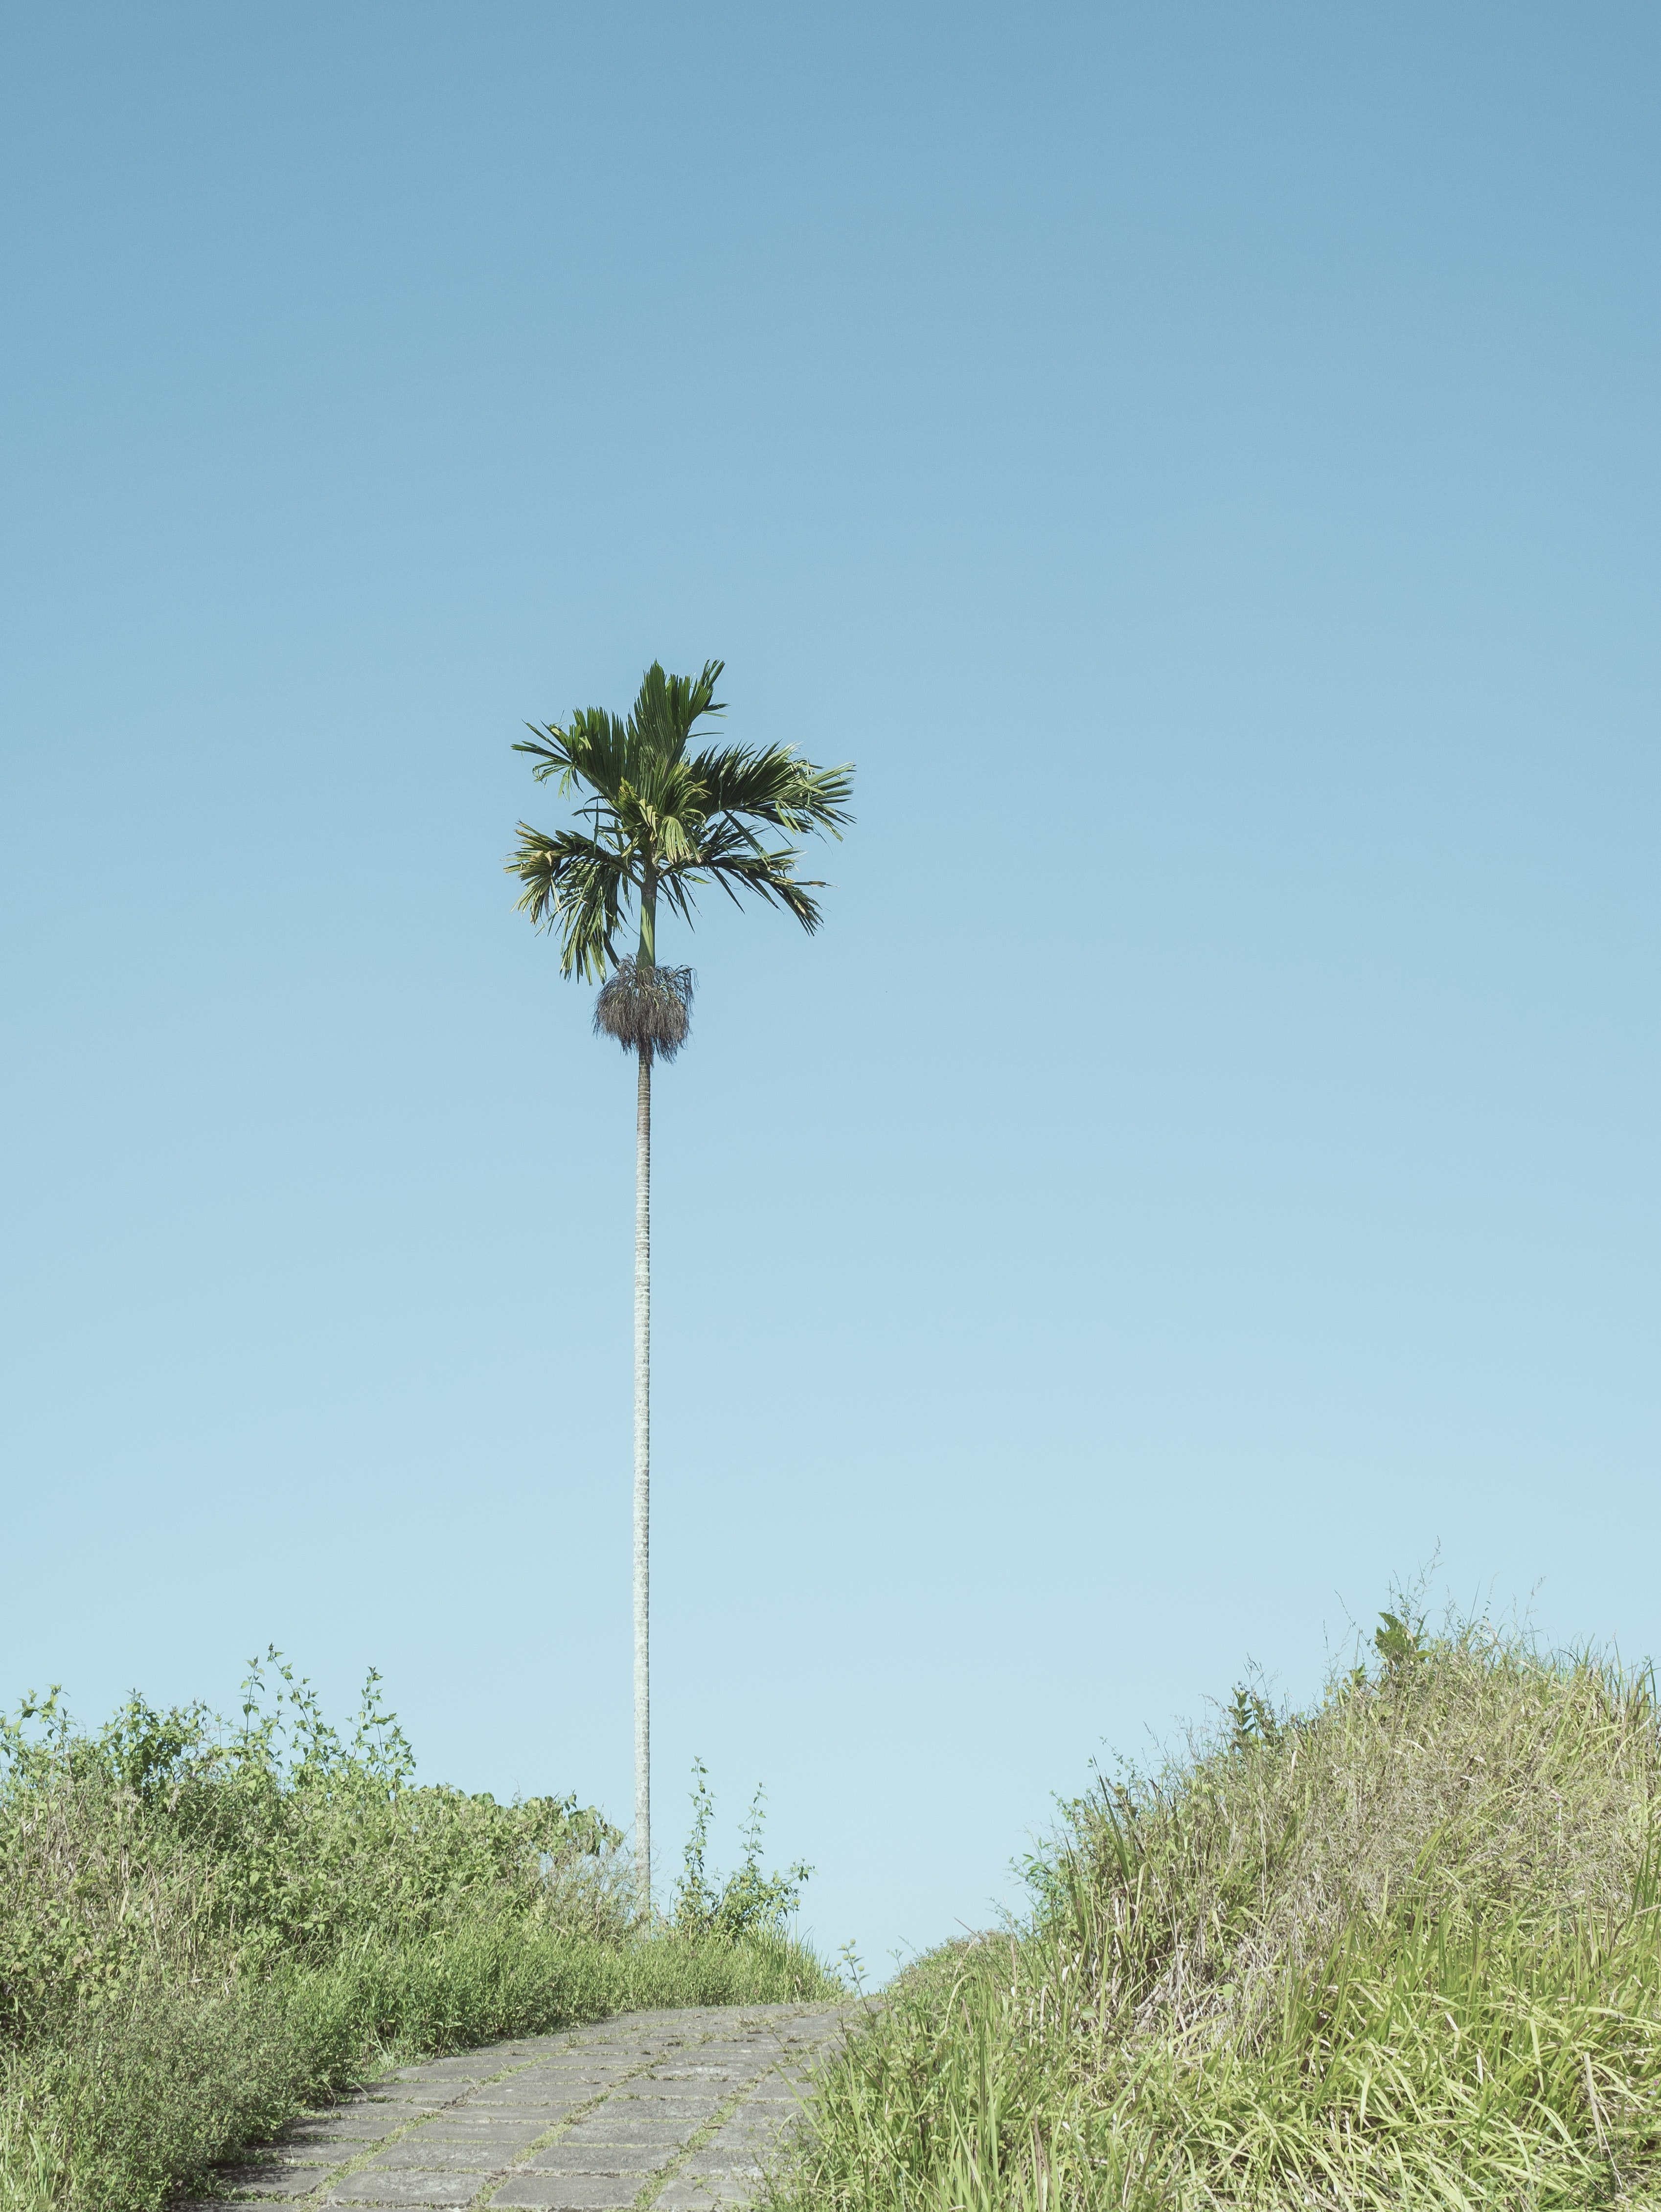 green coconut tree surround by grass under blue sky during daytime